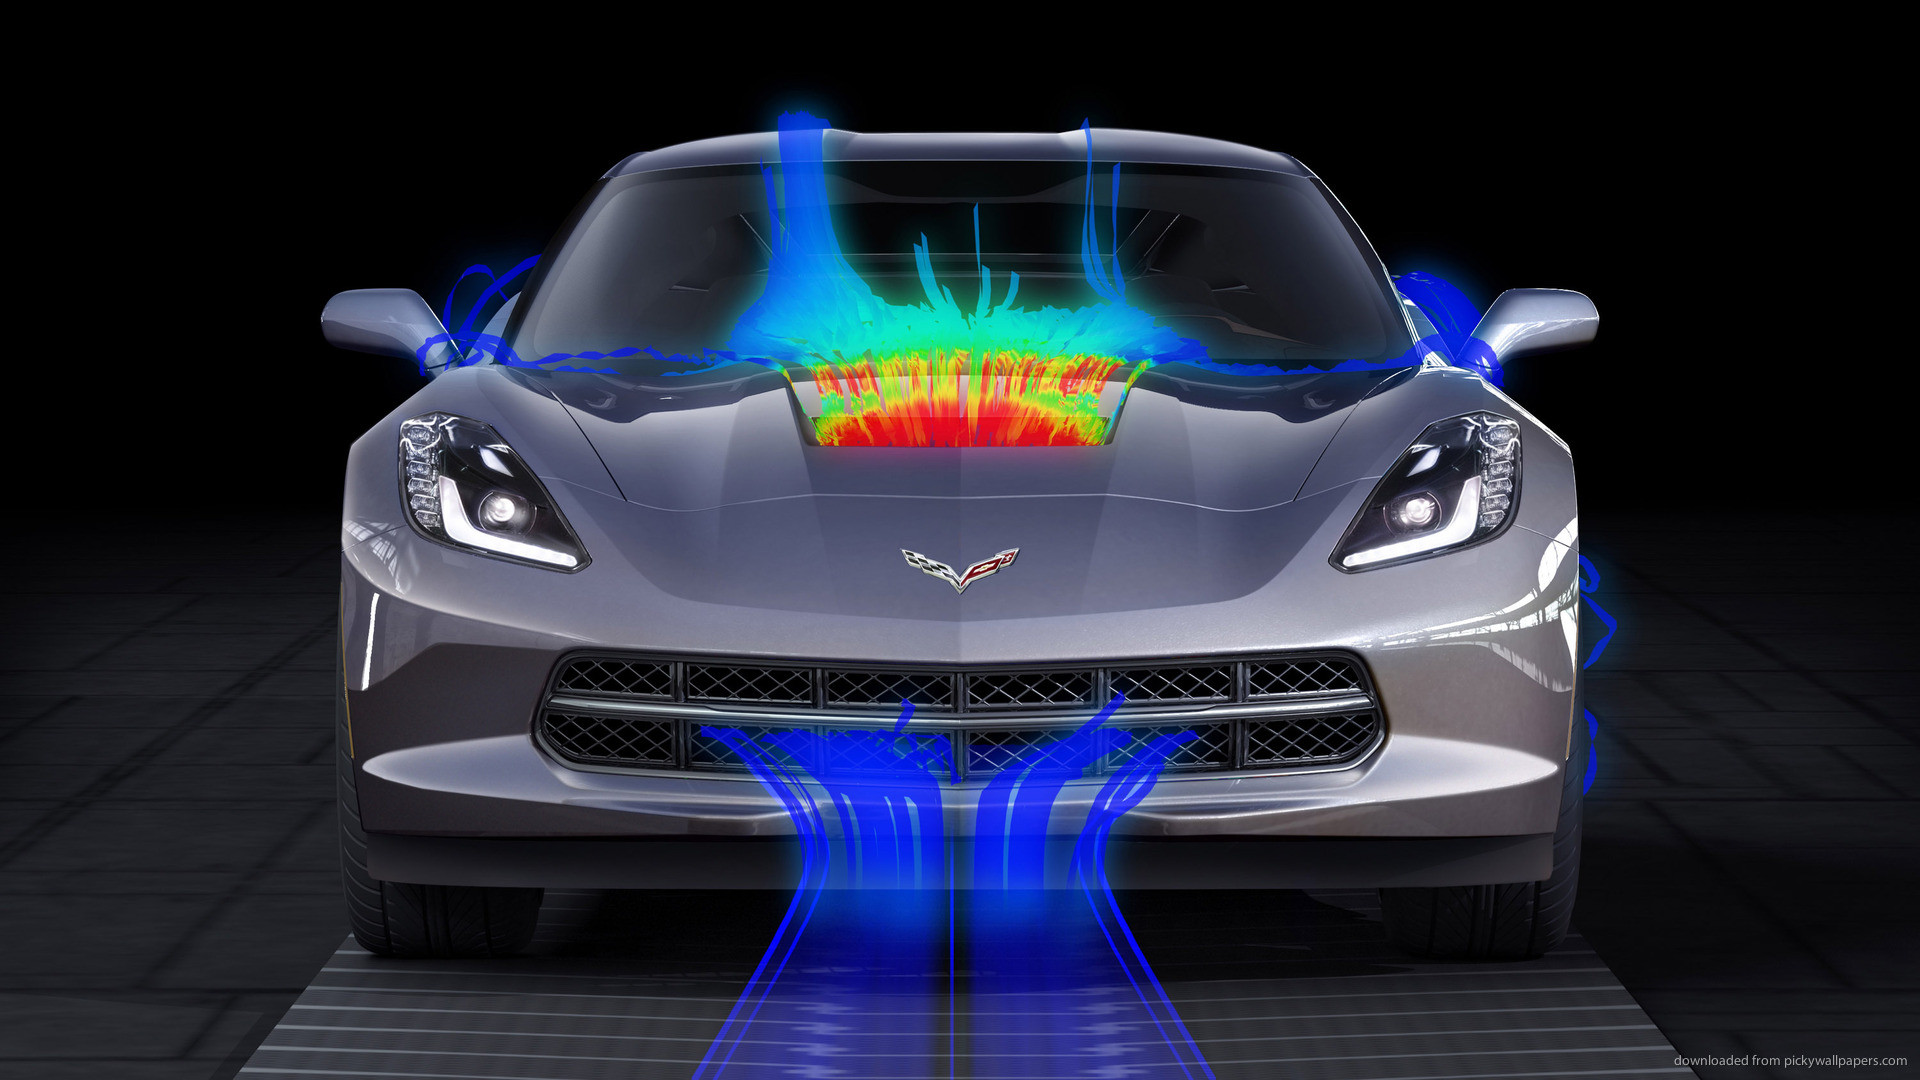 1920x1080 Chevrolet Corvette Stingray Aerodynamics for